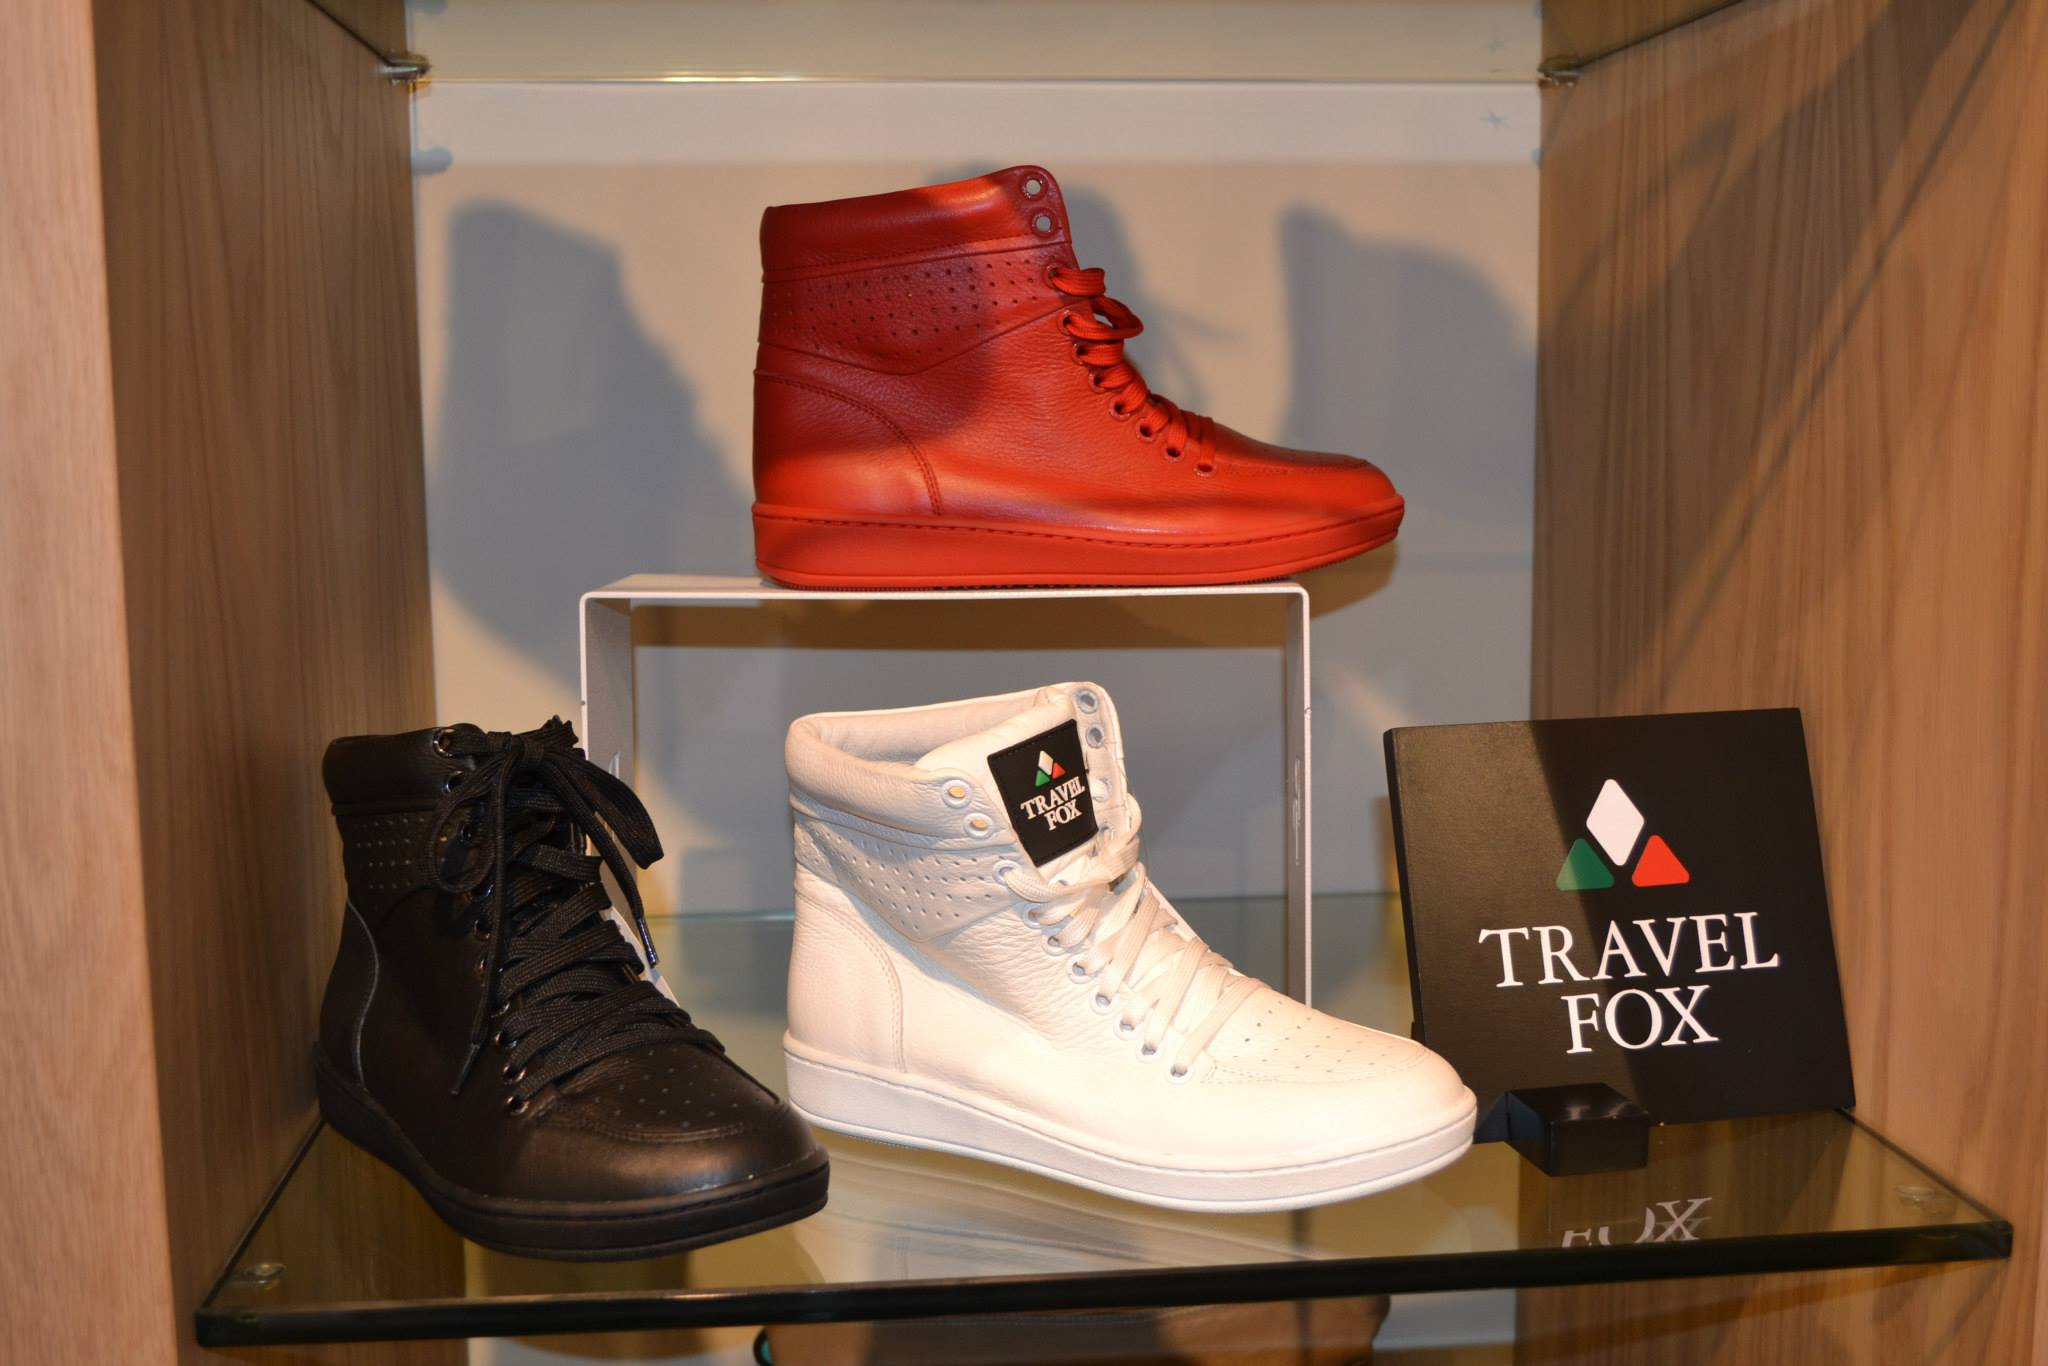 Palazzo Pitti is by far one of the best shoe outlets we've seen in a while! Stocking famous brands like Versace and then some newer ones like Travel Fox